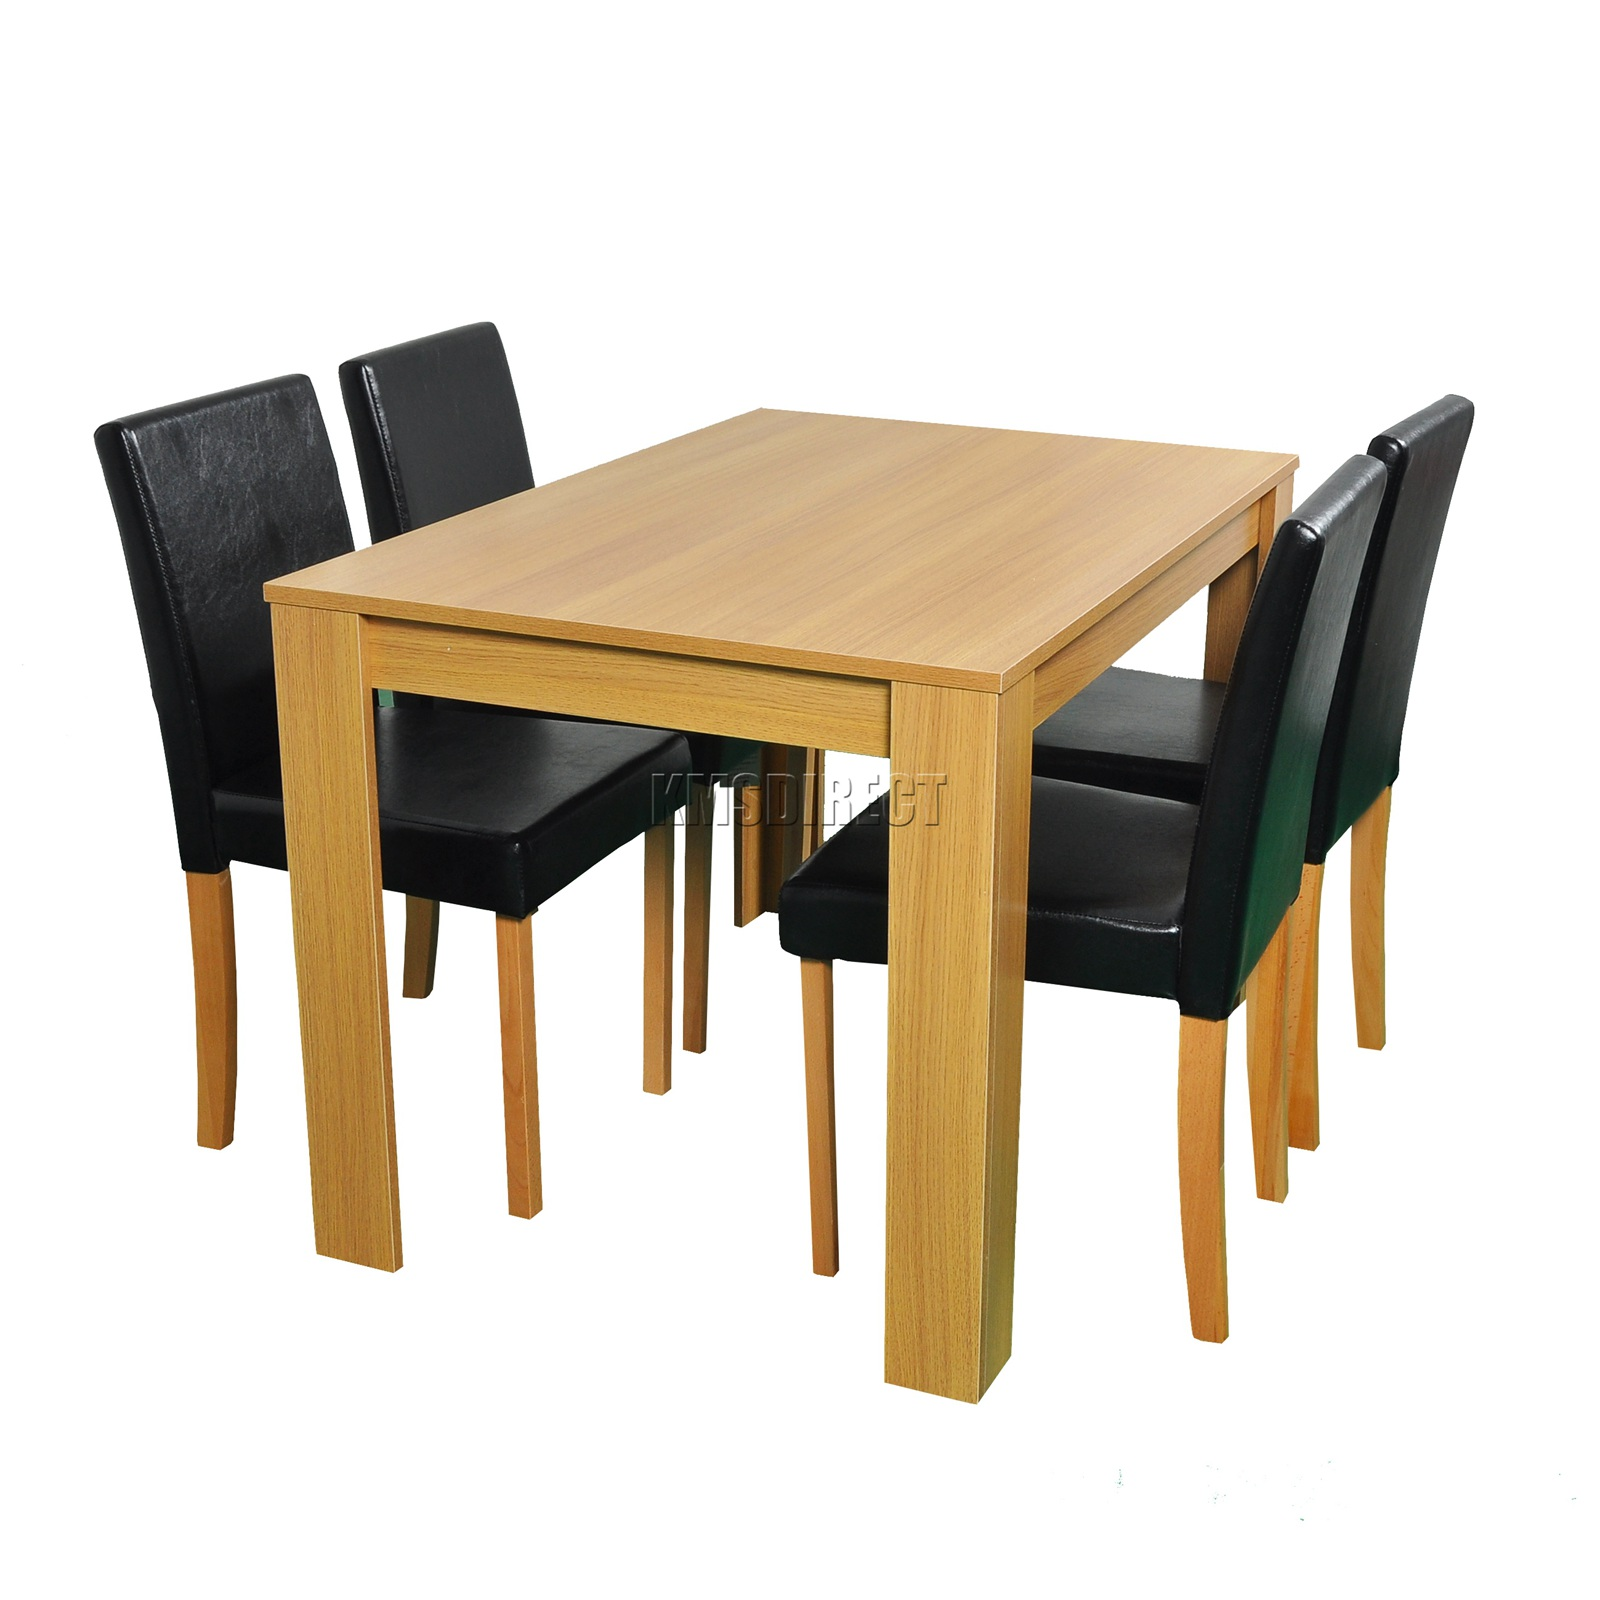 Awesome Details About Westwood Wooden Dining Table And 4 Or 6 Pu Faux Leather Chairs Set Furniture Gmtry Best Dining Table And Chair Ideas Images Gmtryco